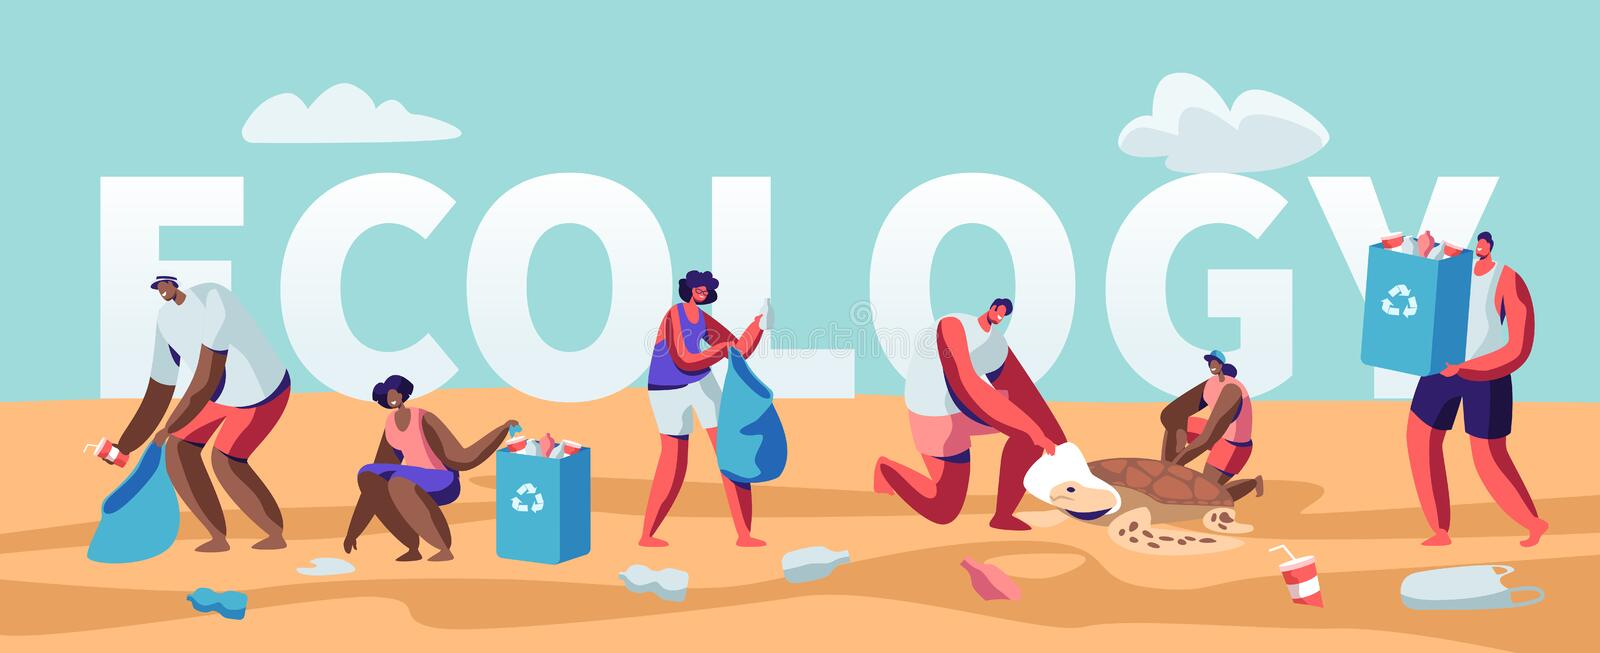 Ecology Protection Concept, People Collecting Trash on Beach. Pollution of Seaside with Garbage. Volunteers Clean Up Wastes royalty free illustration